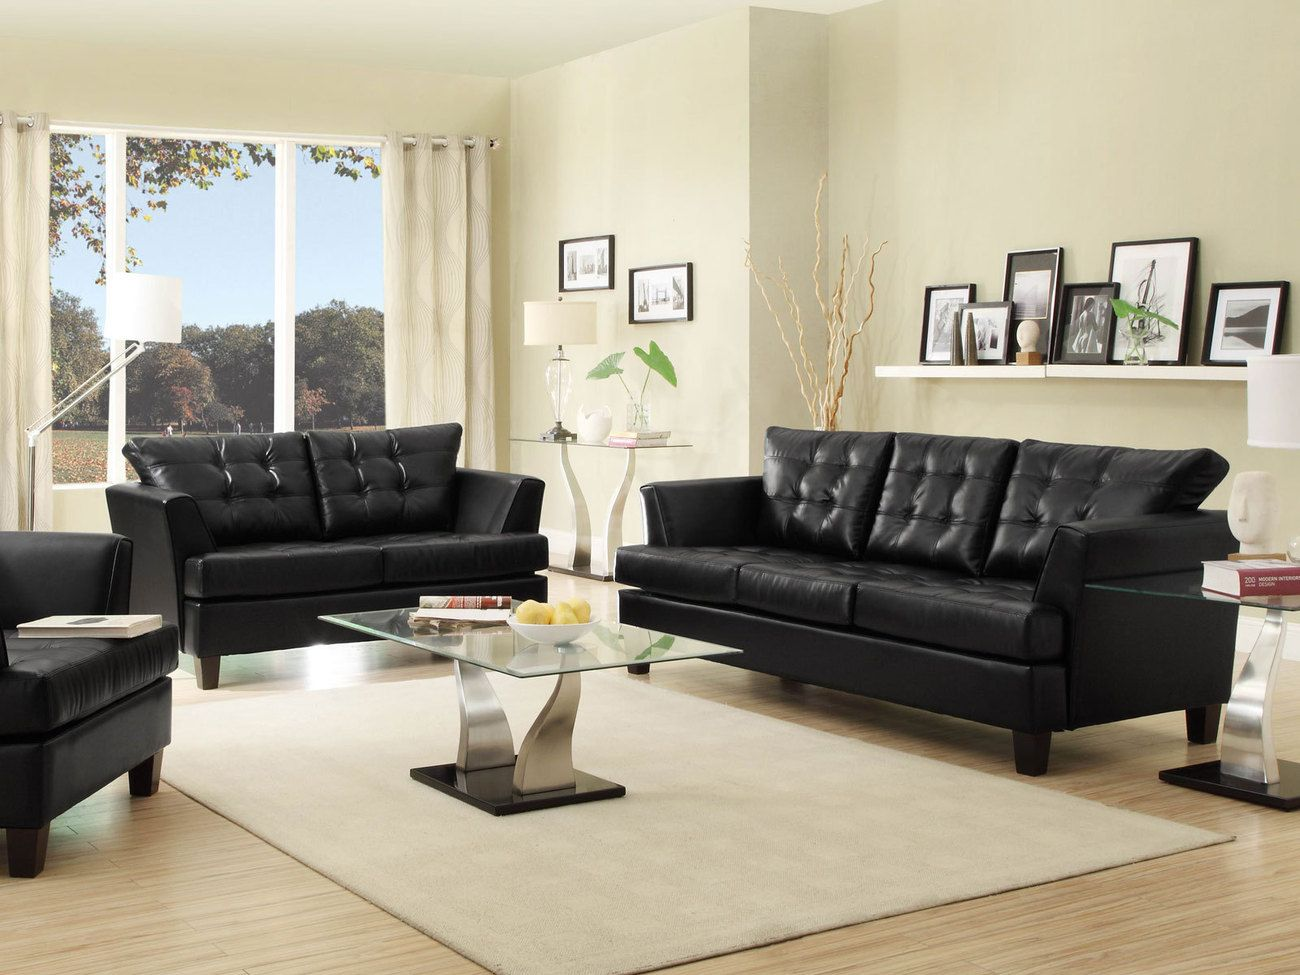 black couches black faux leather faux leather sofa black sofa leather